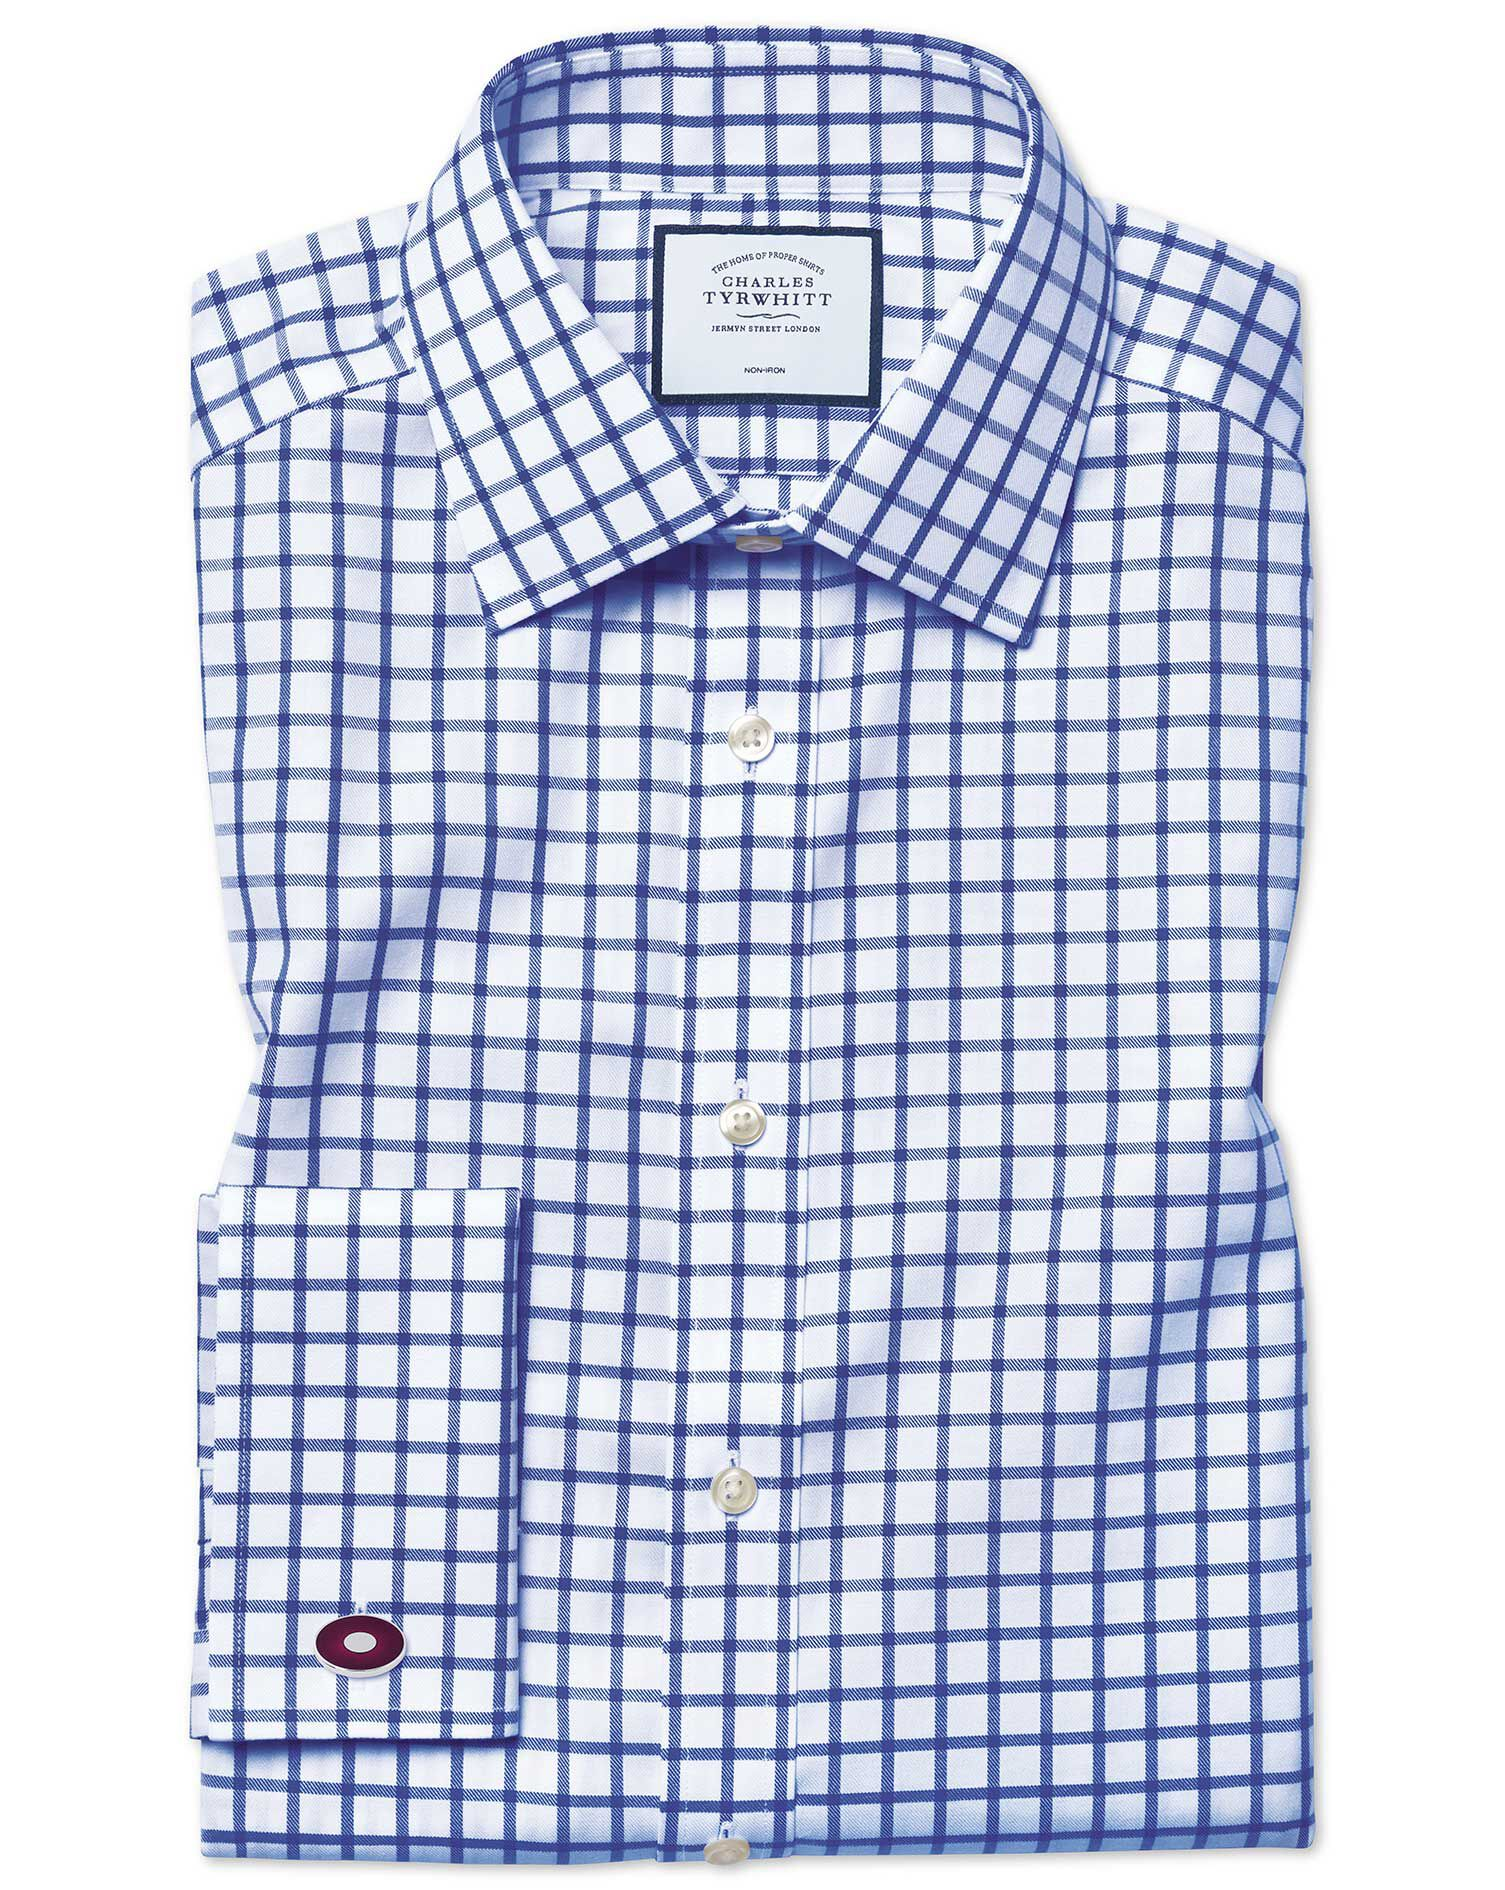 Classic Fit Non-Iron Twill Grid Check Royal Blue Cotton Formal Shirt Single Cuff Size 18/36 by Charl